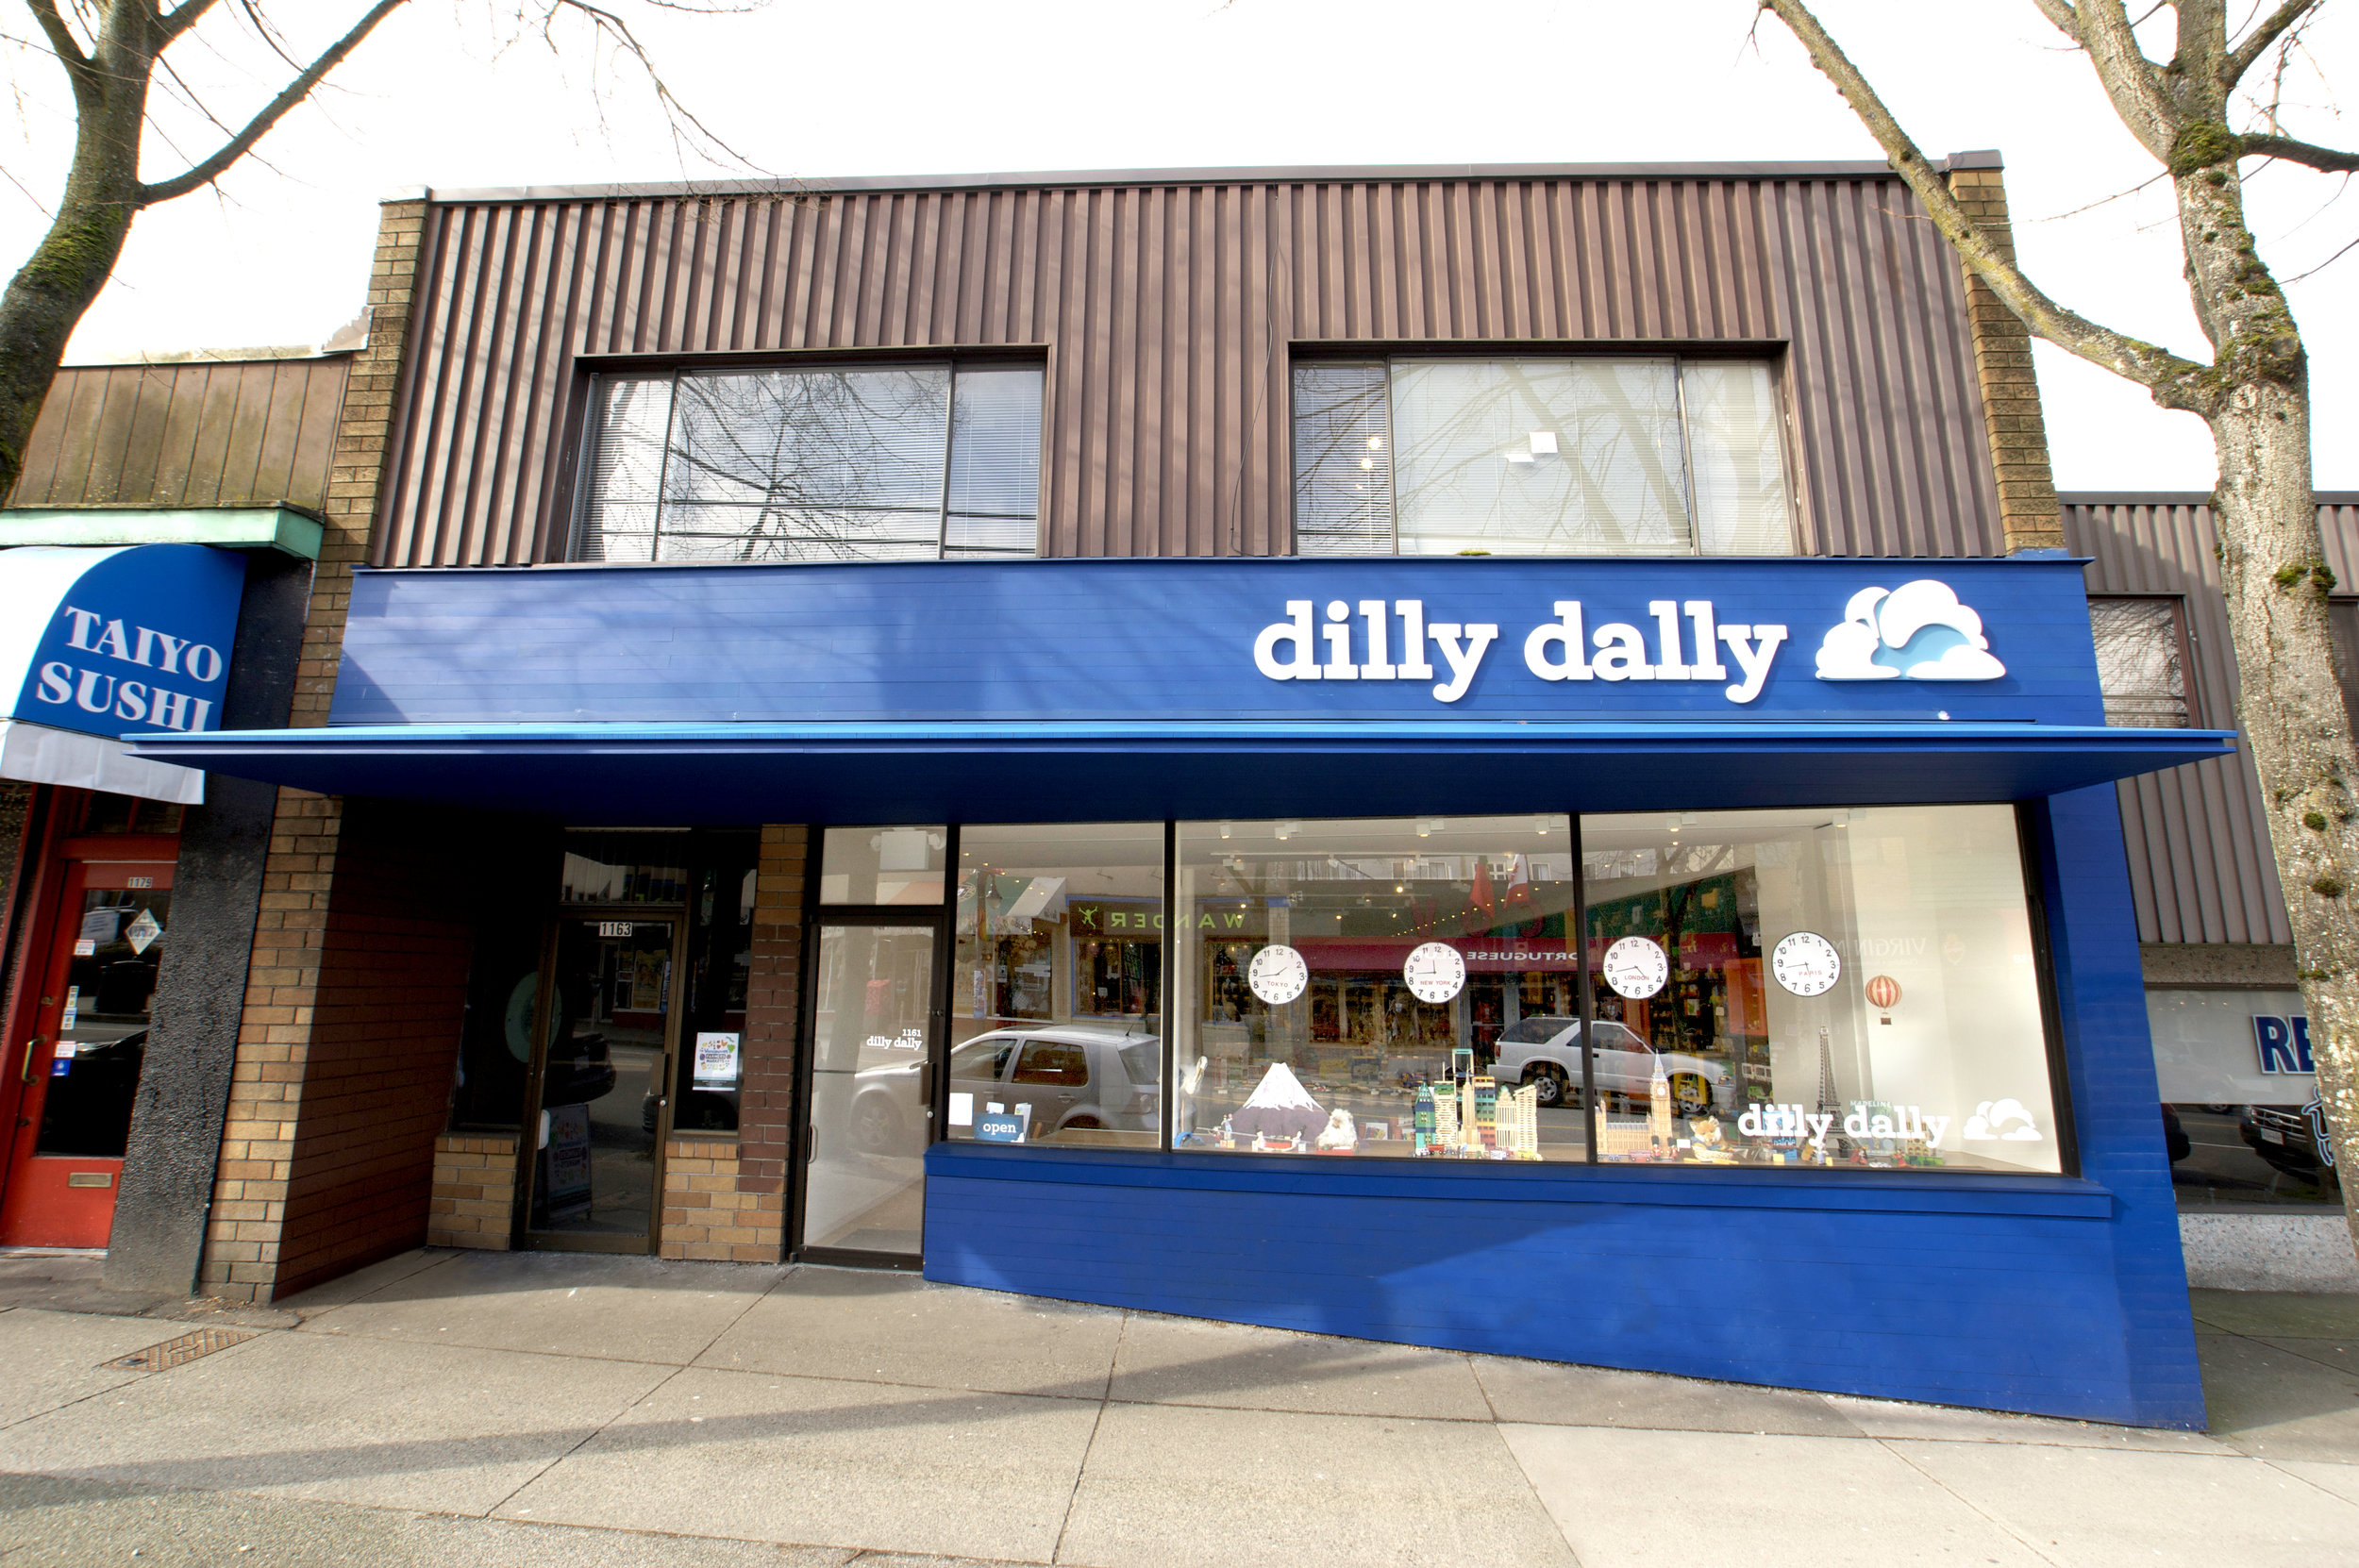 Vancouver Dilly Dally Jacqueline Wiles 12.jpg